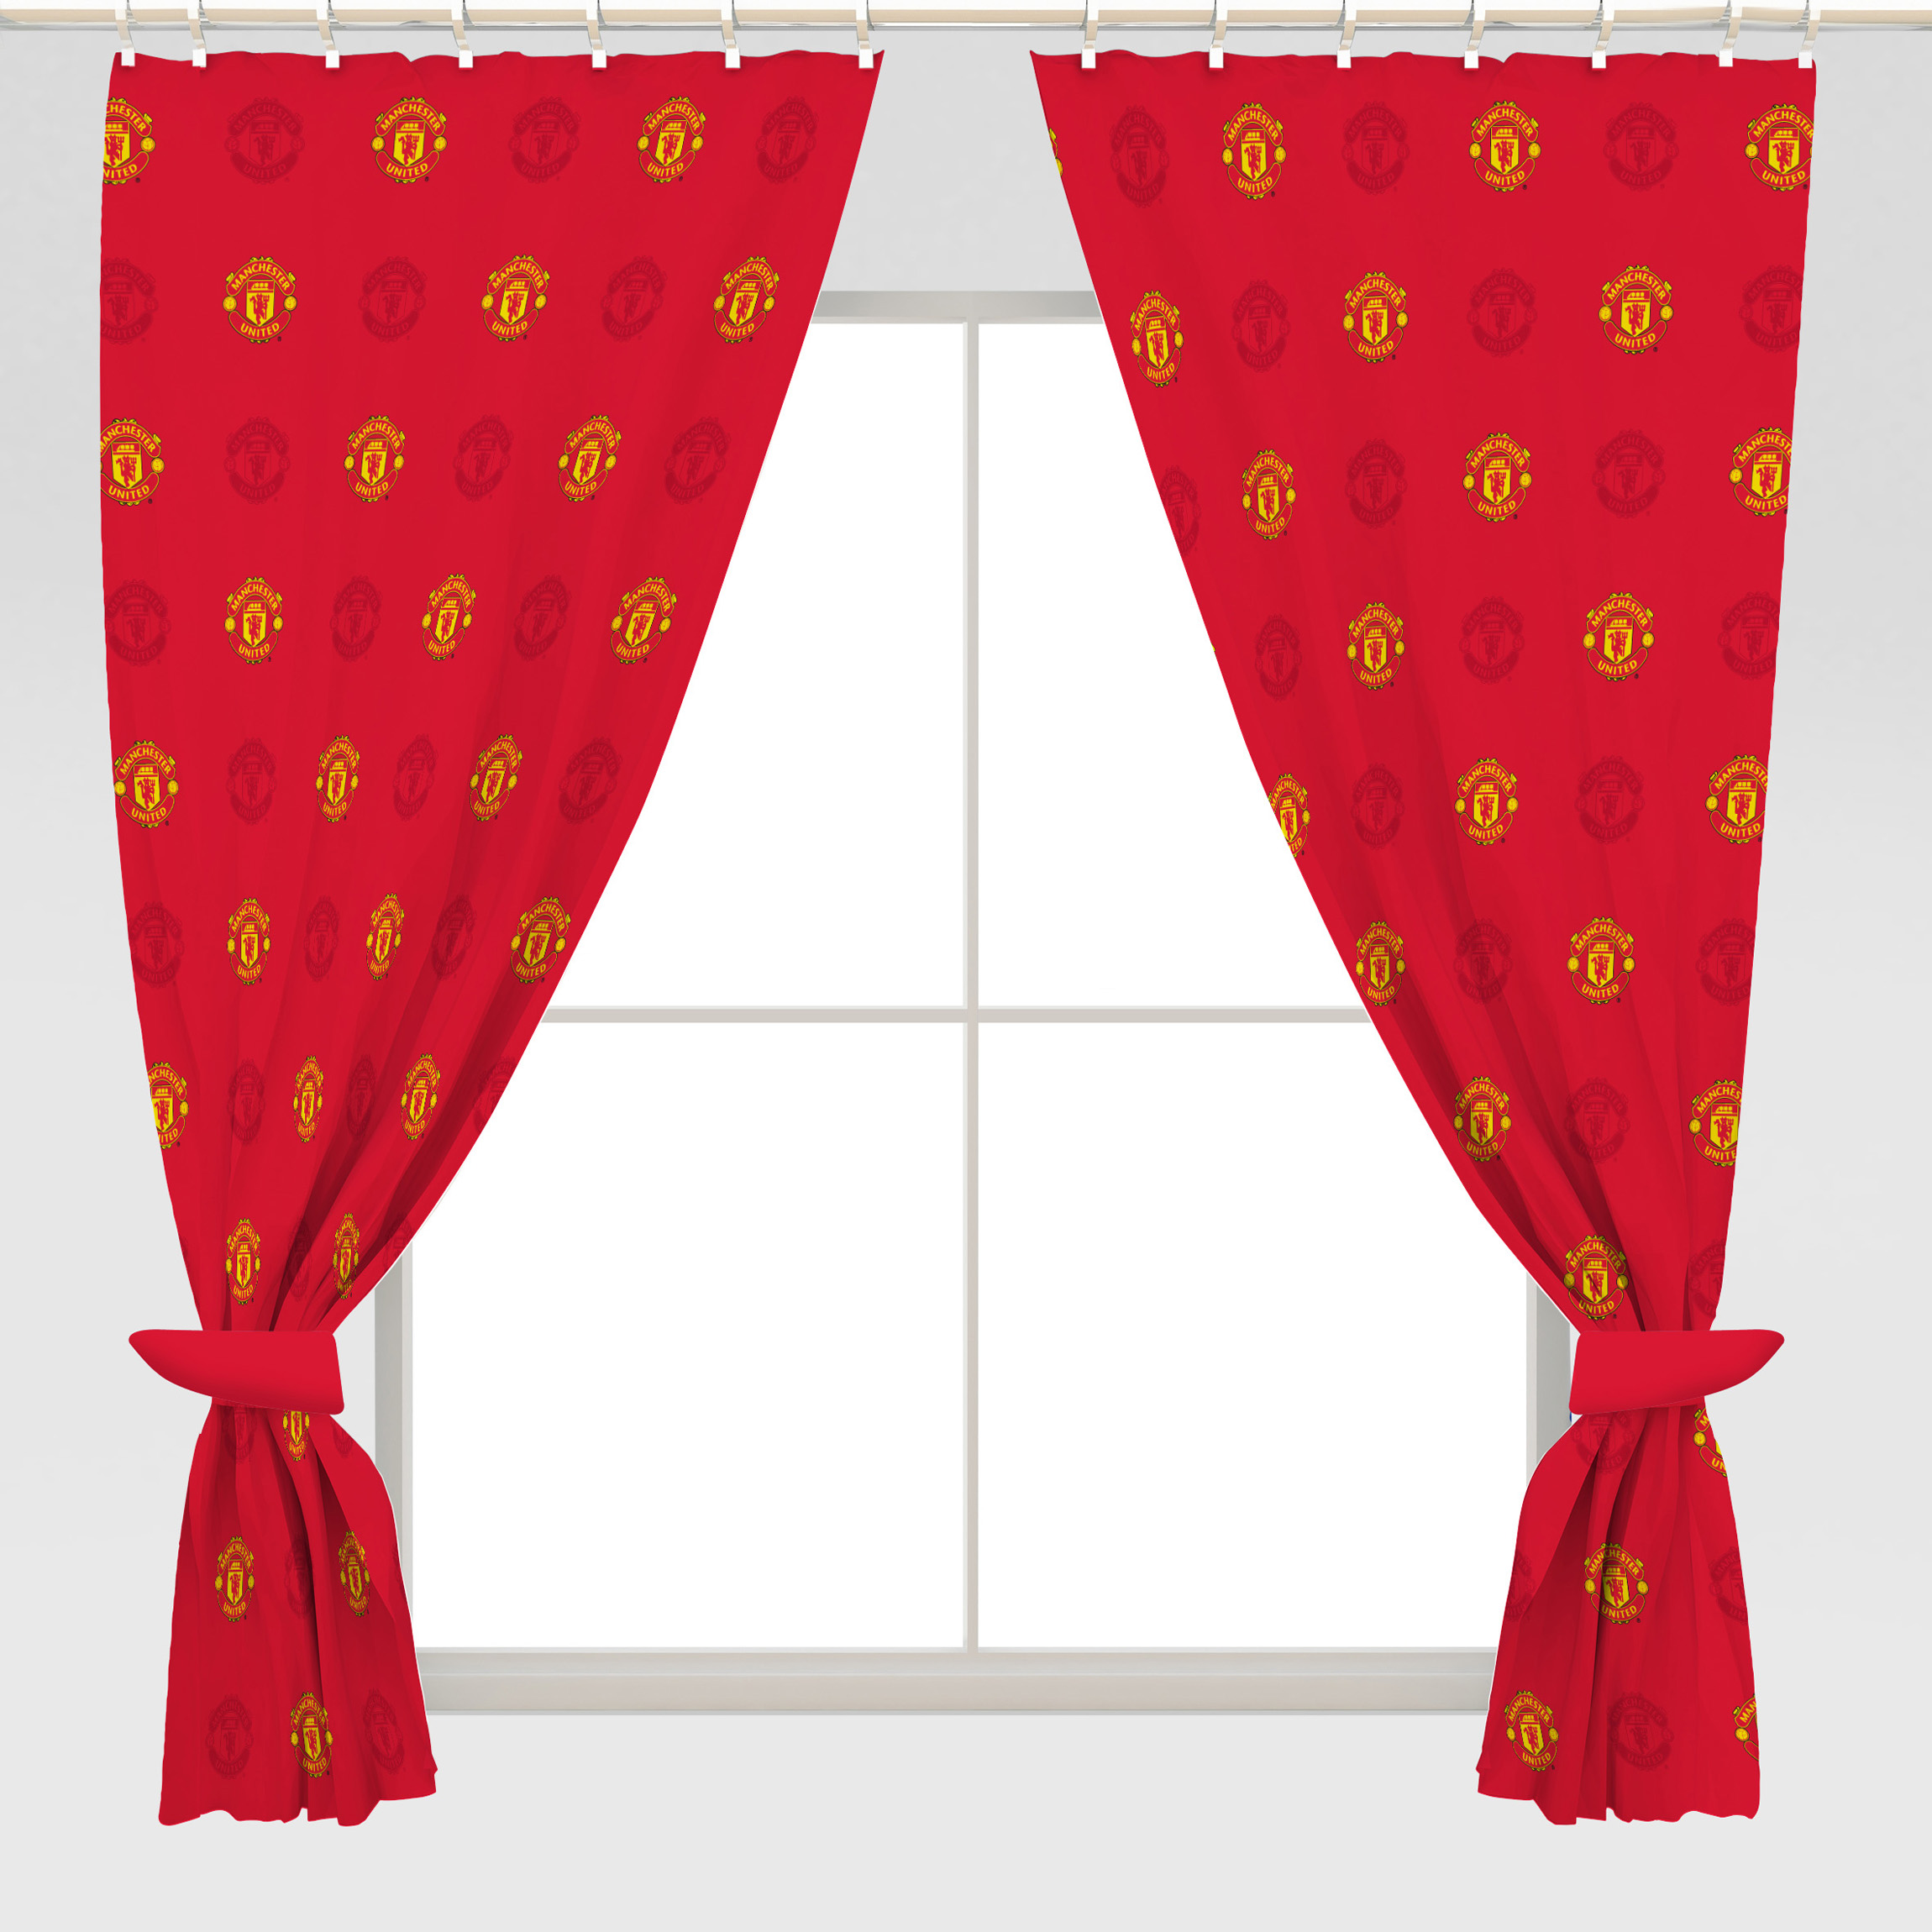 Manchester United Repeat Crest Curtains - 72inch Drop